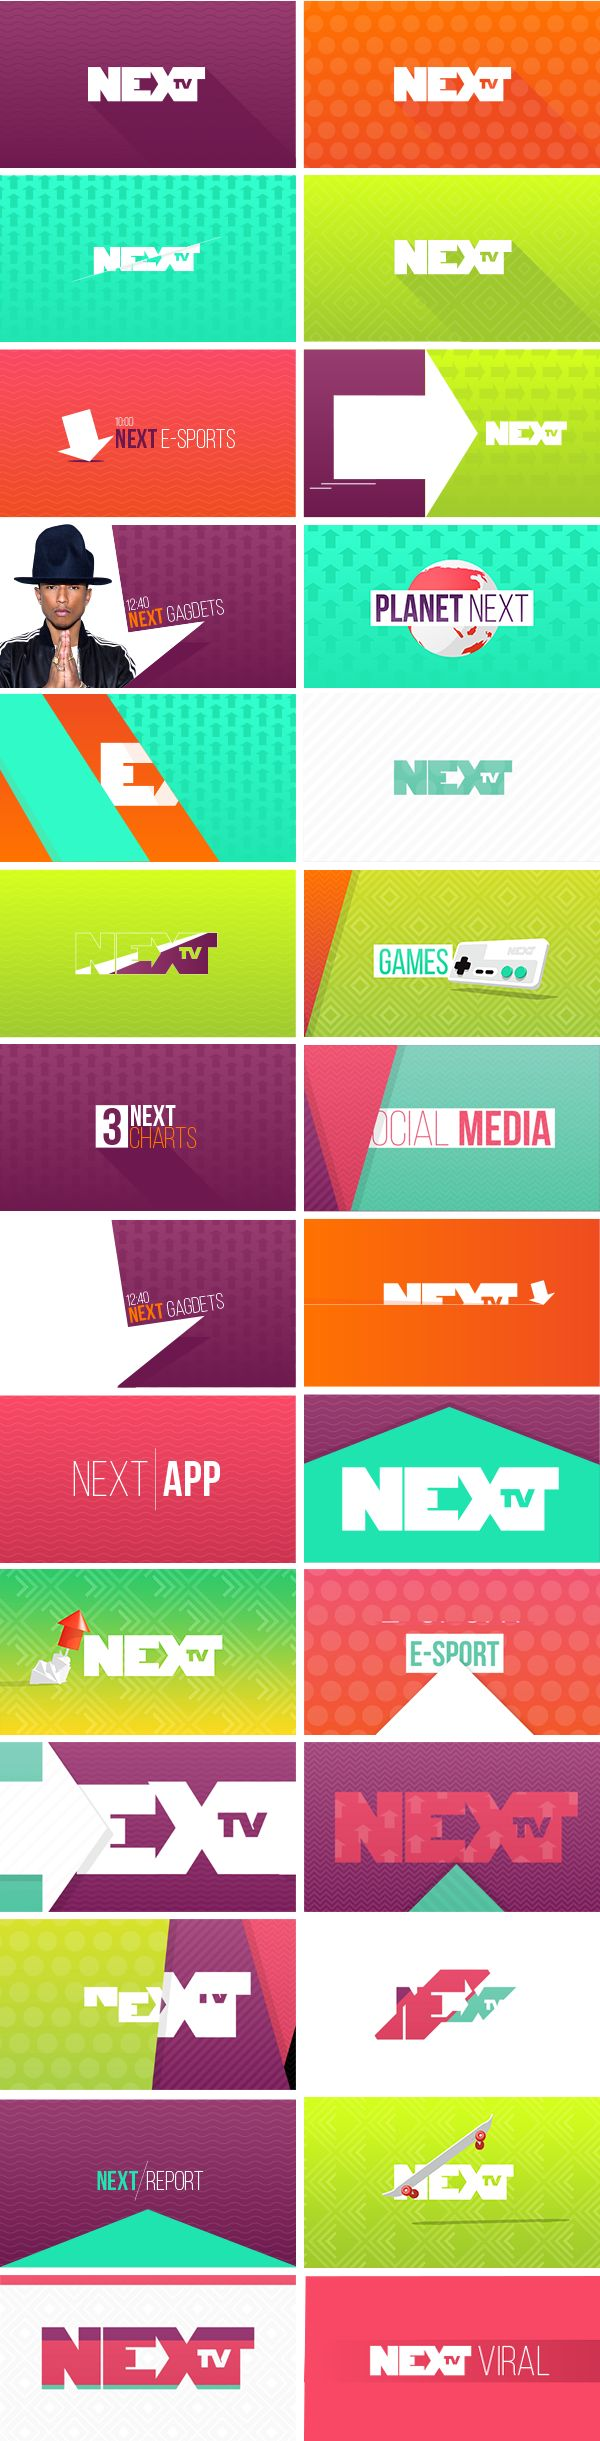 NEXT TV - Branding on Branding Served